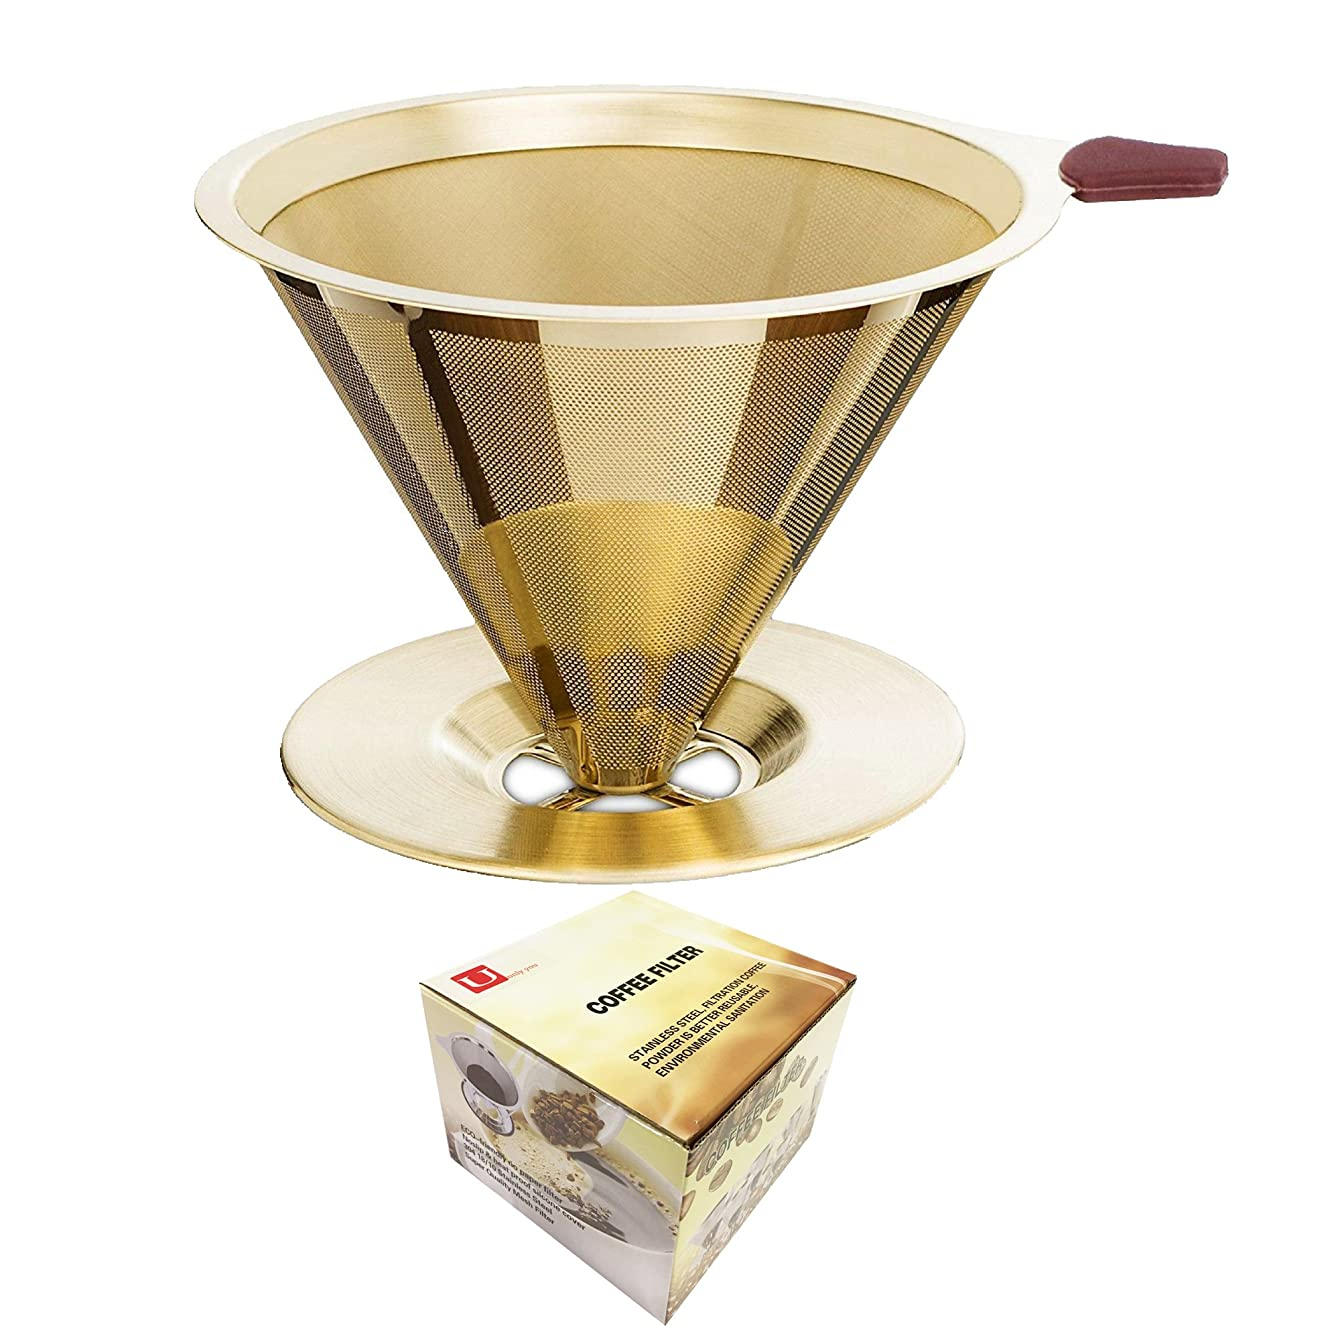 U only you Pour Over Gold Coffee Filter,Titanium Coated Permanent Coffee Dripper with Cup Stand,Double Layered Filter,Paperless Reusable Stainless Steel Cone Coffee Maker,1-4 Cups (Titanium Gold)